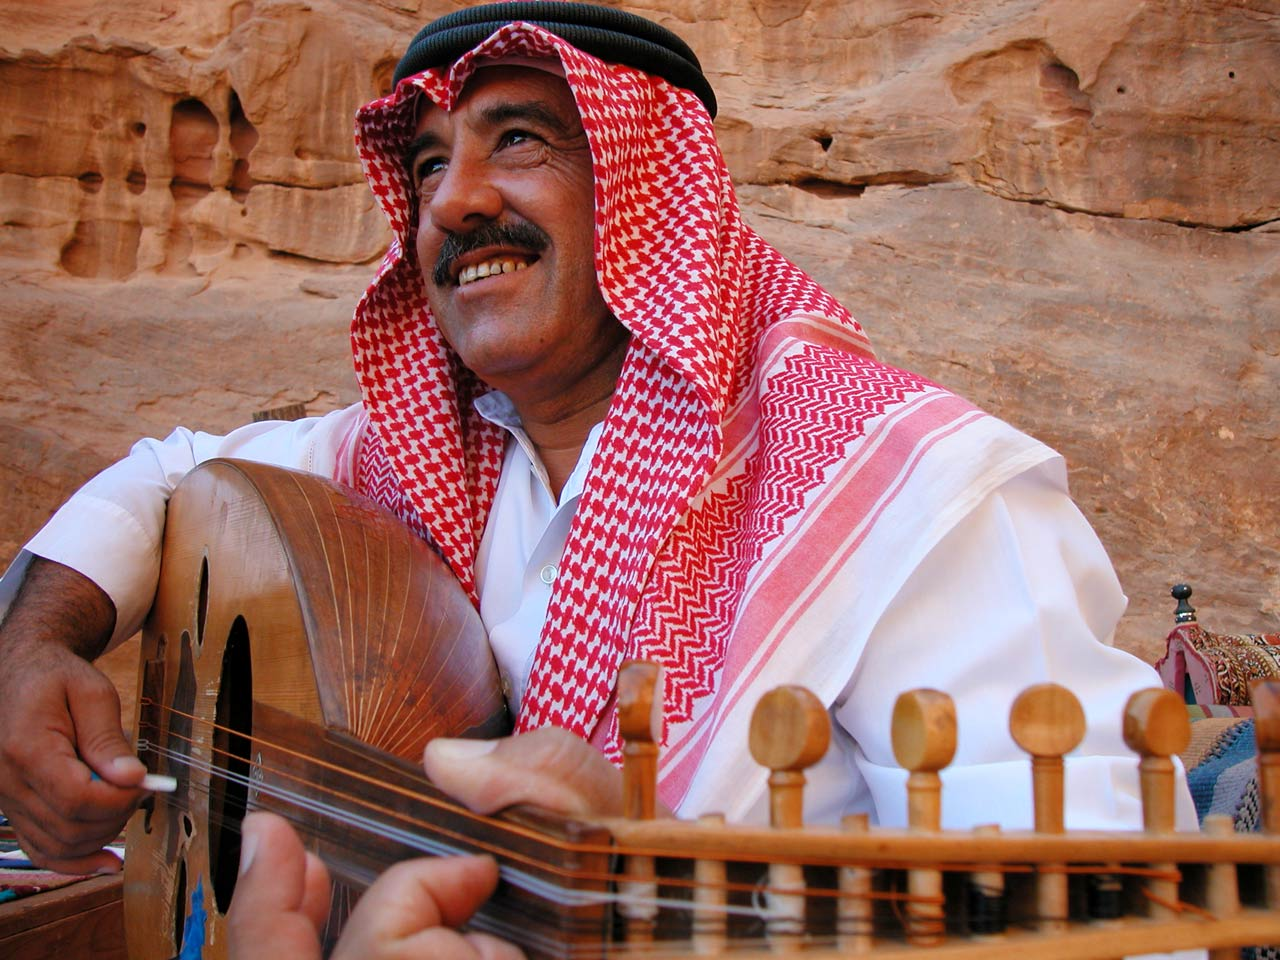 Jordan - musician in traditional clothes